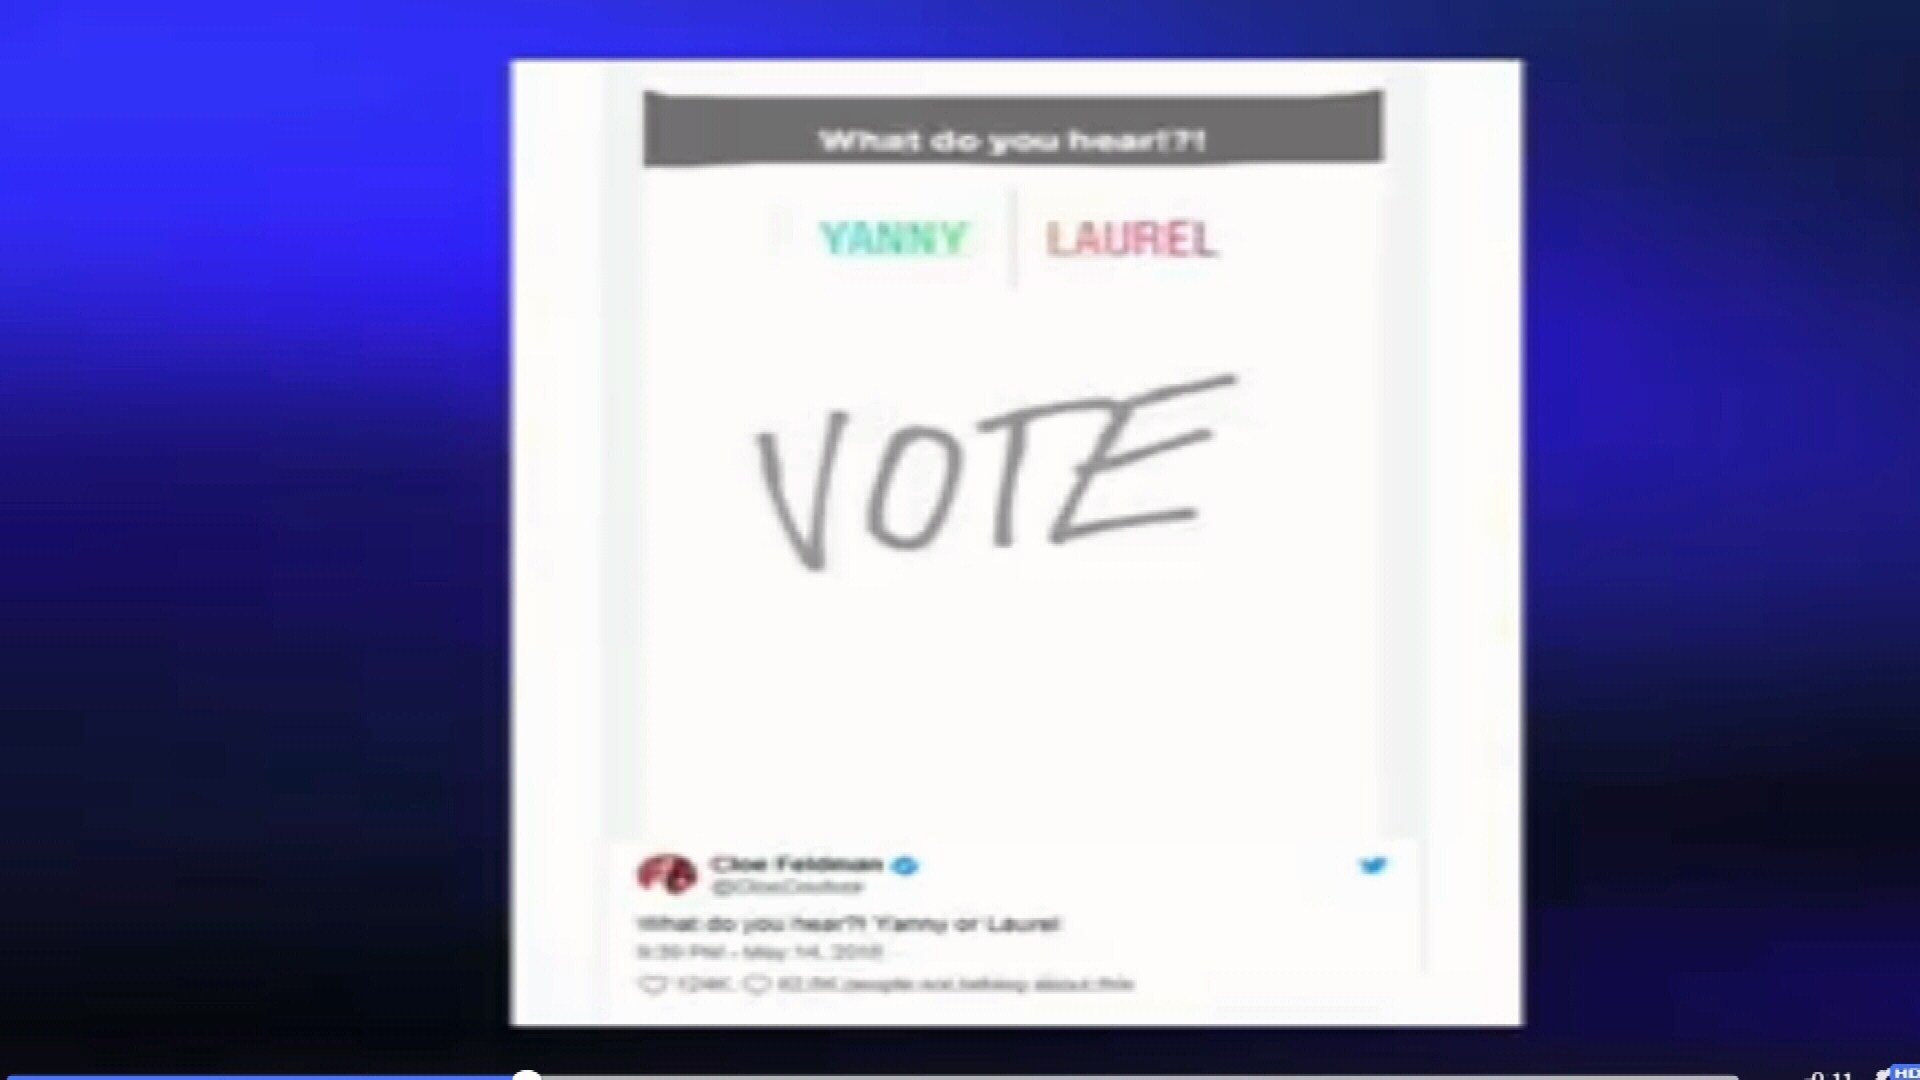 Yanny or Laurel? It's the question dividing the internet